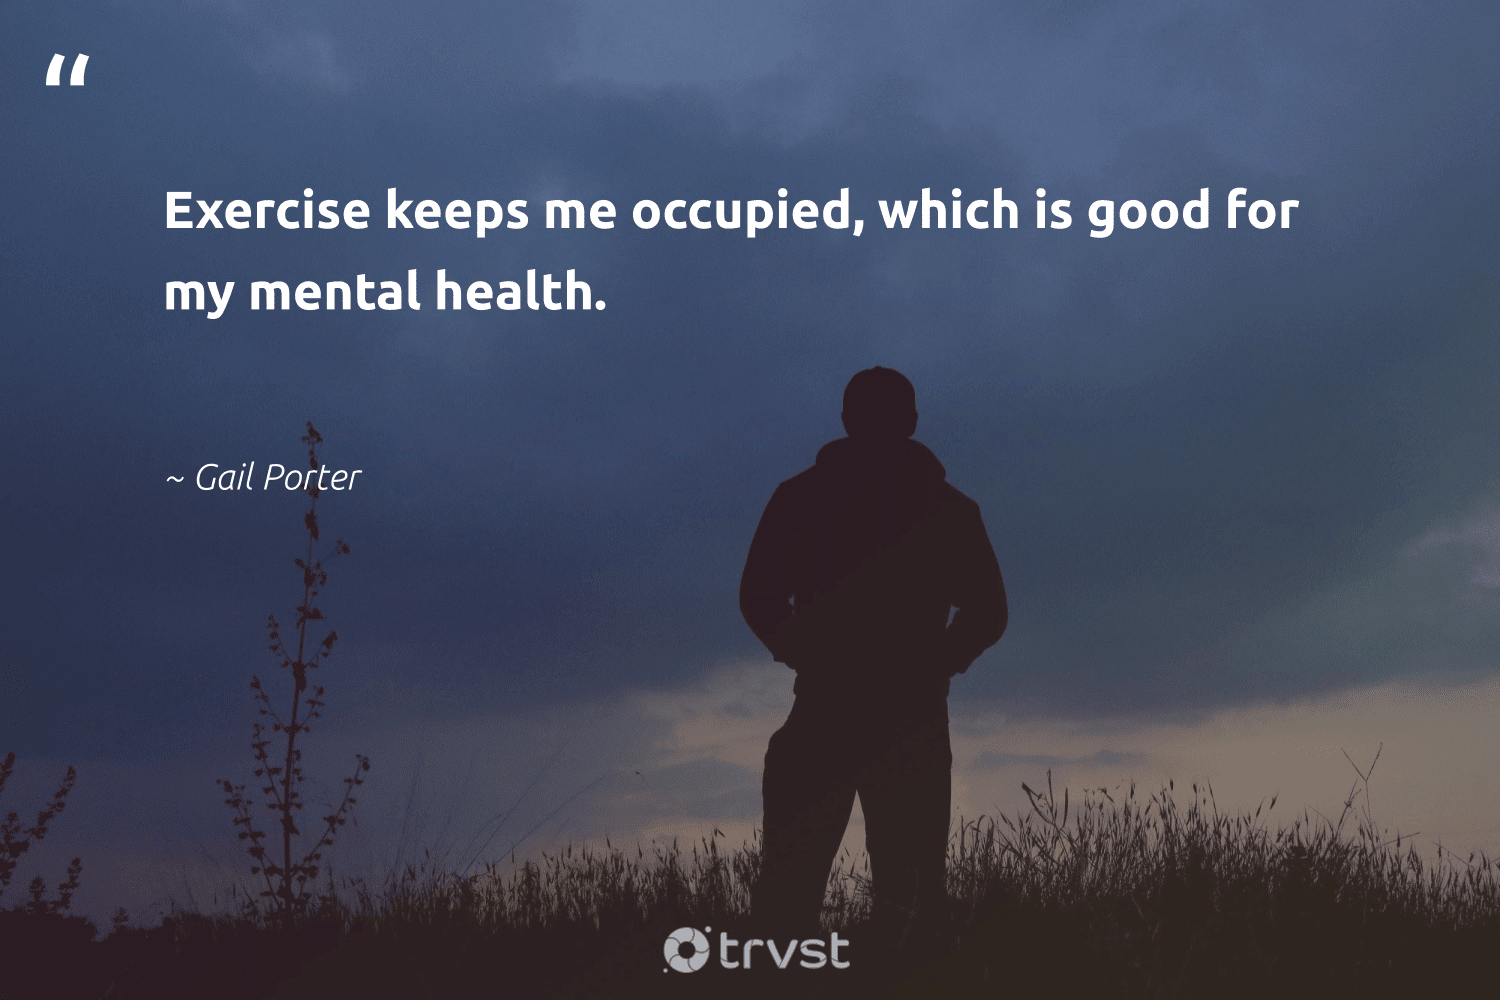 """""""Exercise keeps me occupied, which is good for my mental health.""""  - Gail Porter #trvst #quotes #mentalhealth #health #exercise #depression #togetherwecan #changemakers #changetheworld #anxiety #begreat #nevergiveup"""